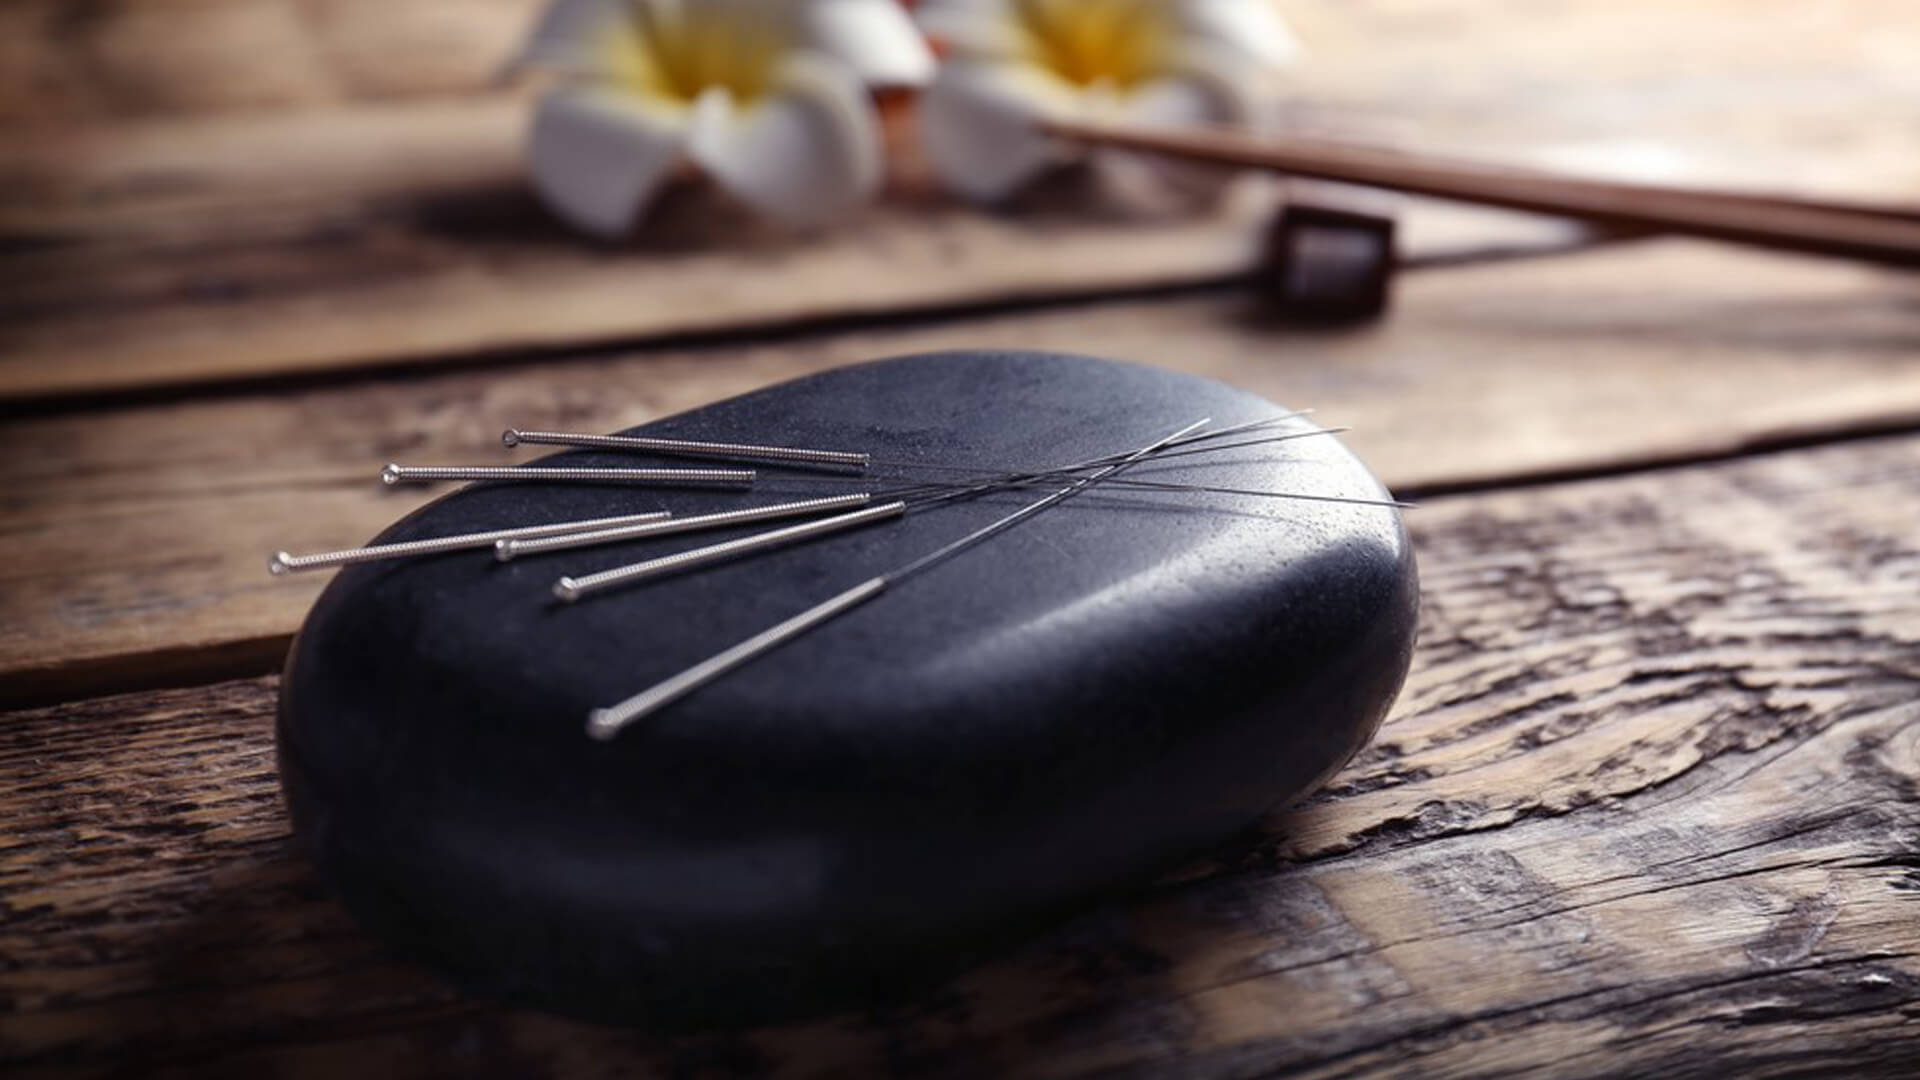 Acupunture Relives Workplace Stress and Pain